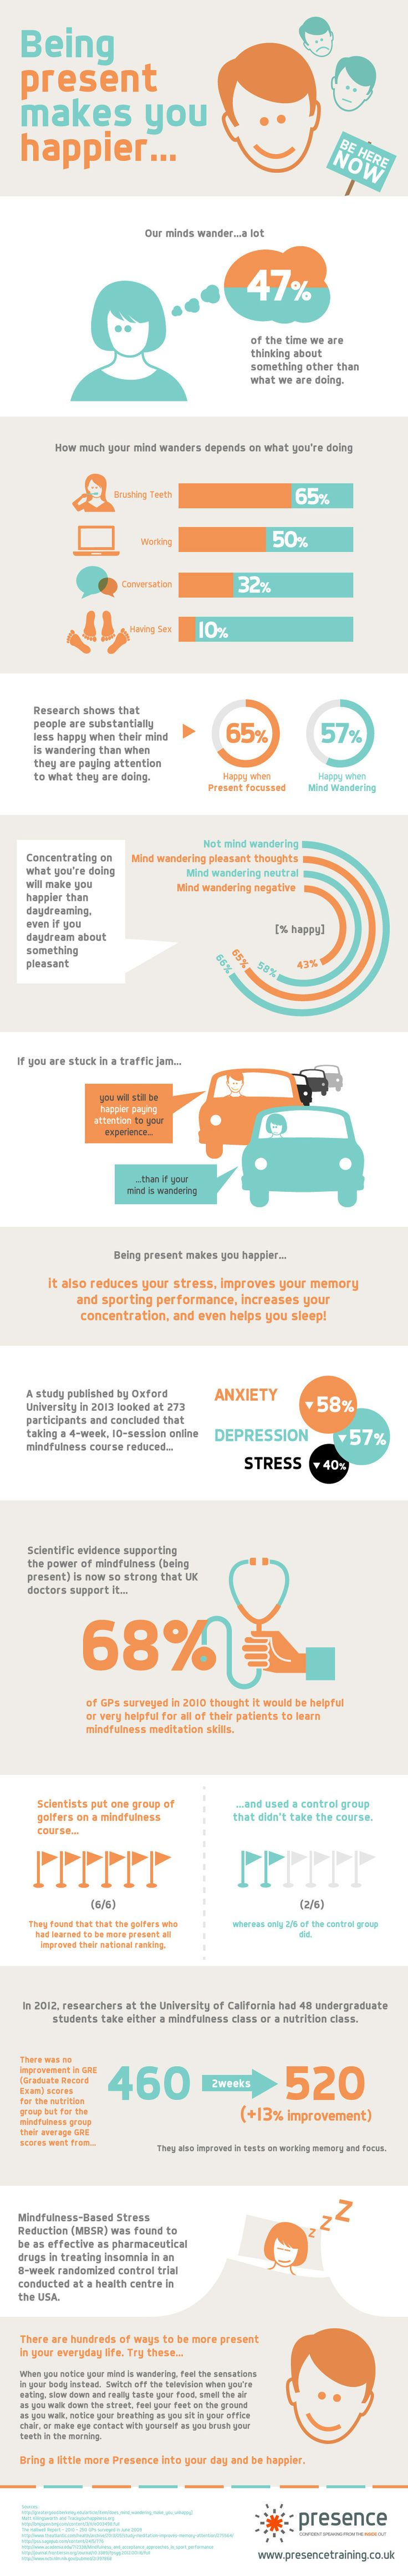 Being Present Makes You Happier #infographic #Happy #Workplace